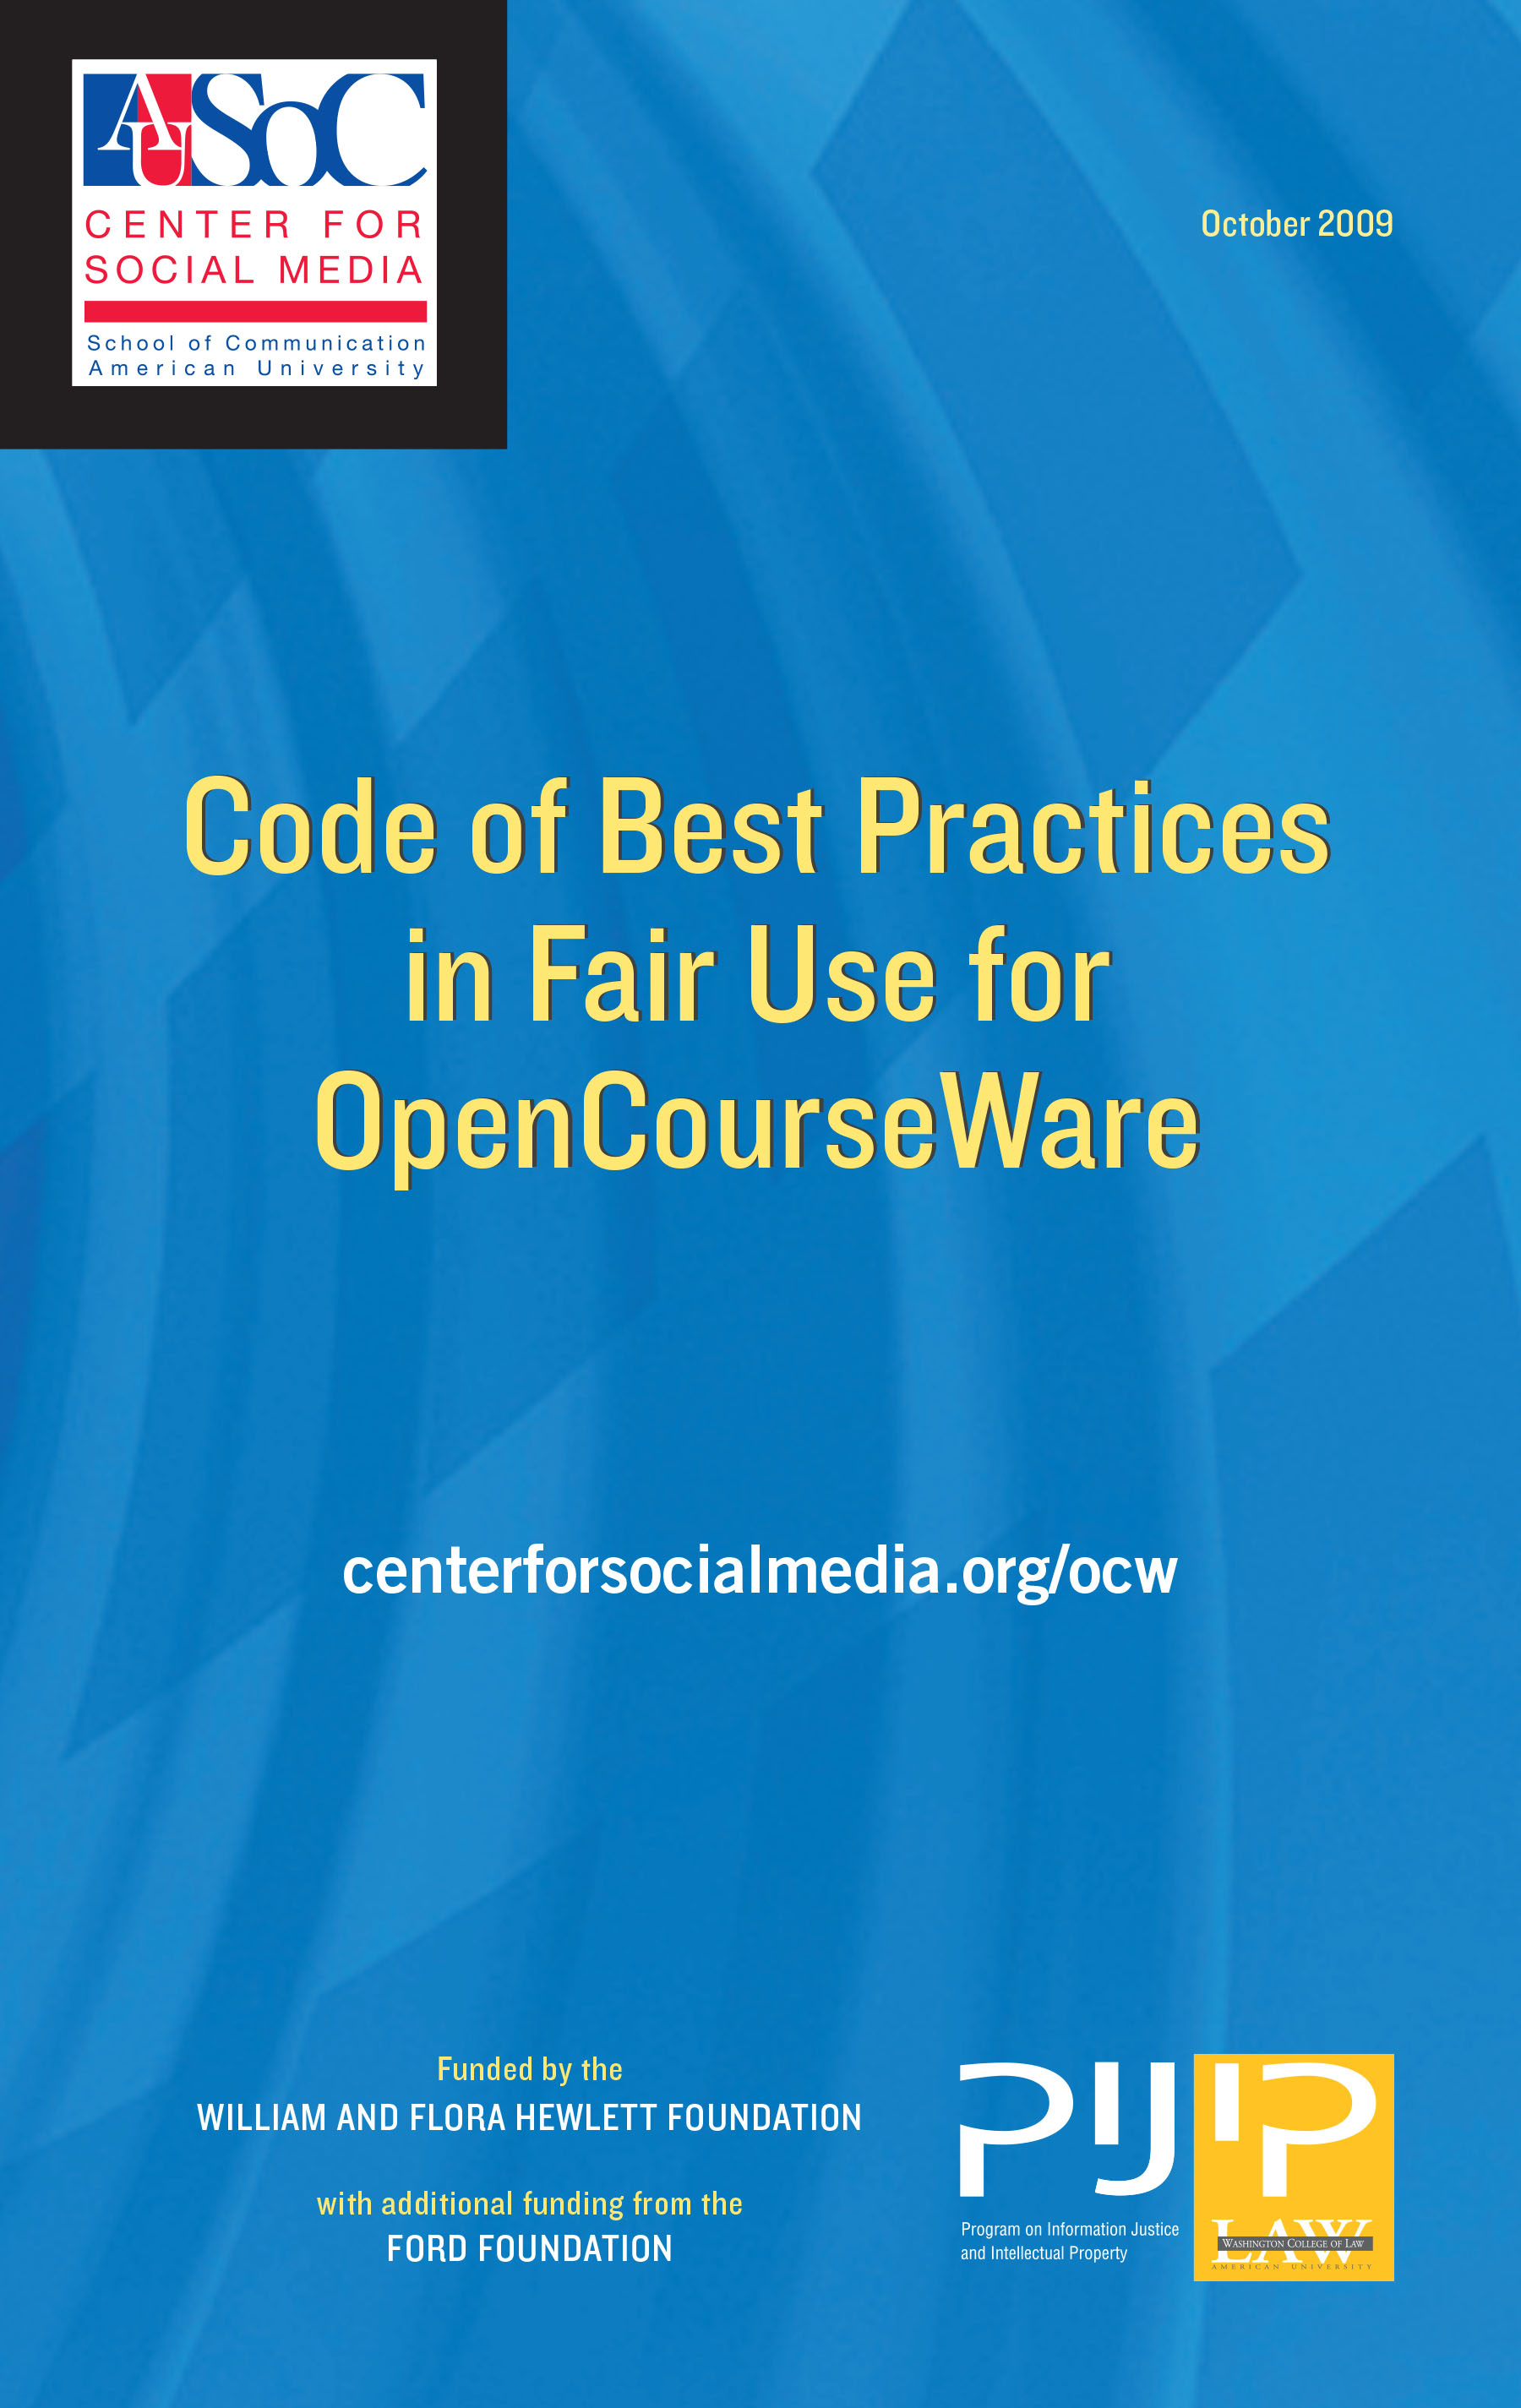 Cover of the Best Practices Guide (image): opens PDF of document in new window